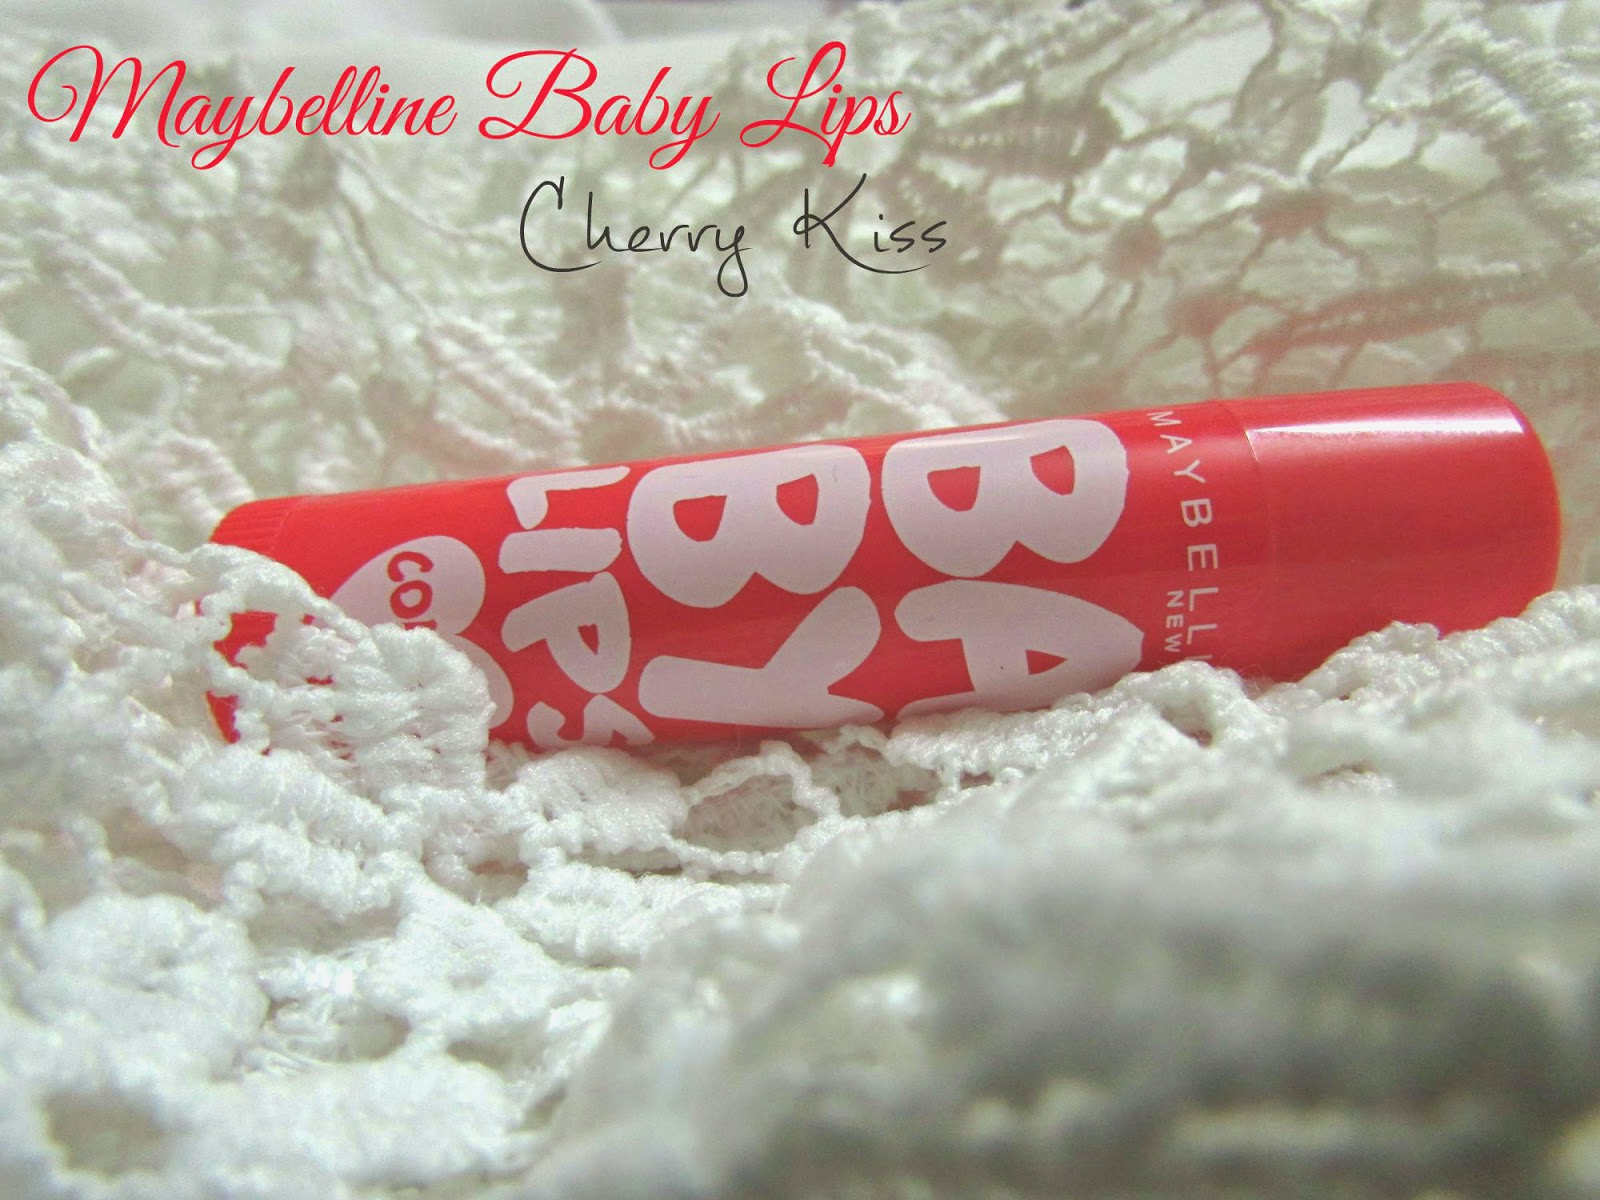 Baby lips in india,maybelline baby lips cost in india,maybelline baby lips review,maybelline baby lips review india